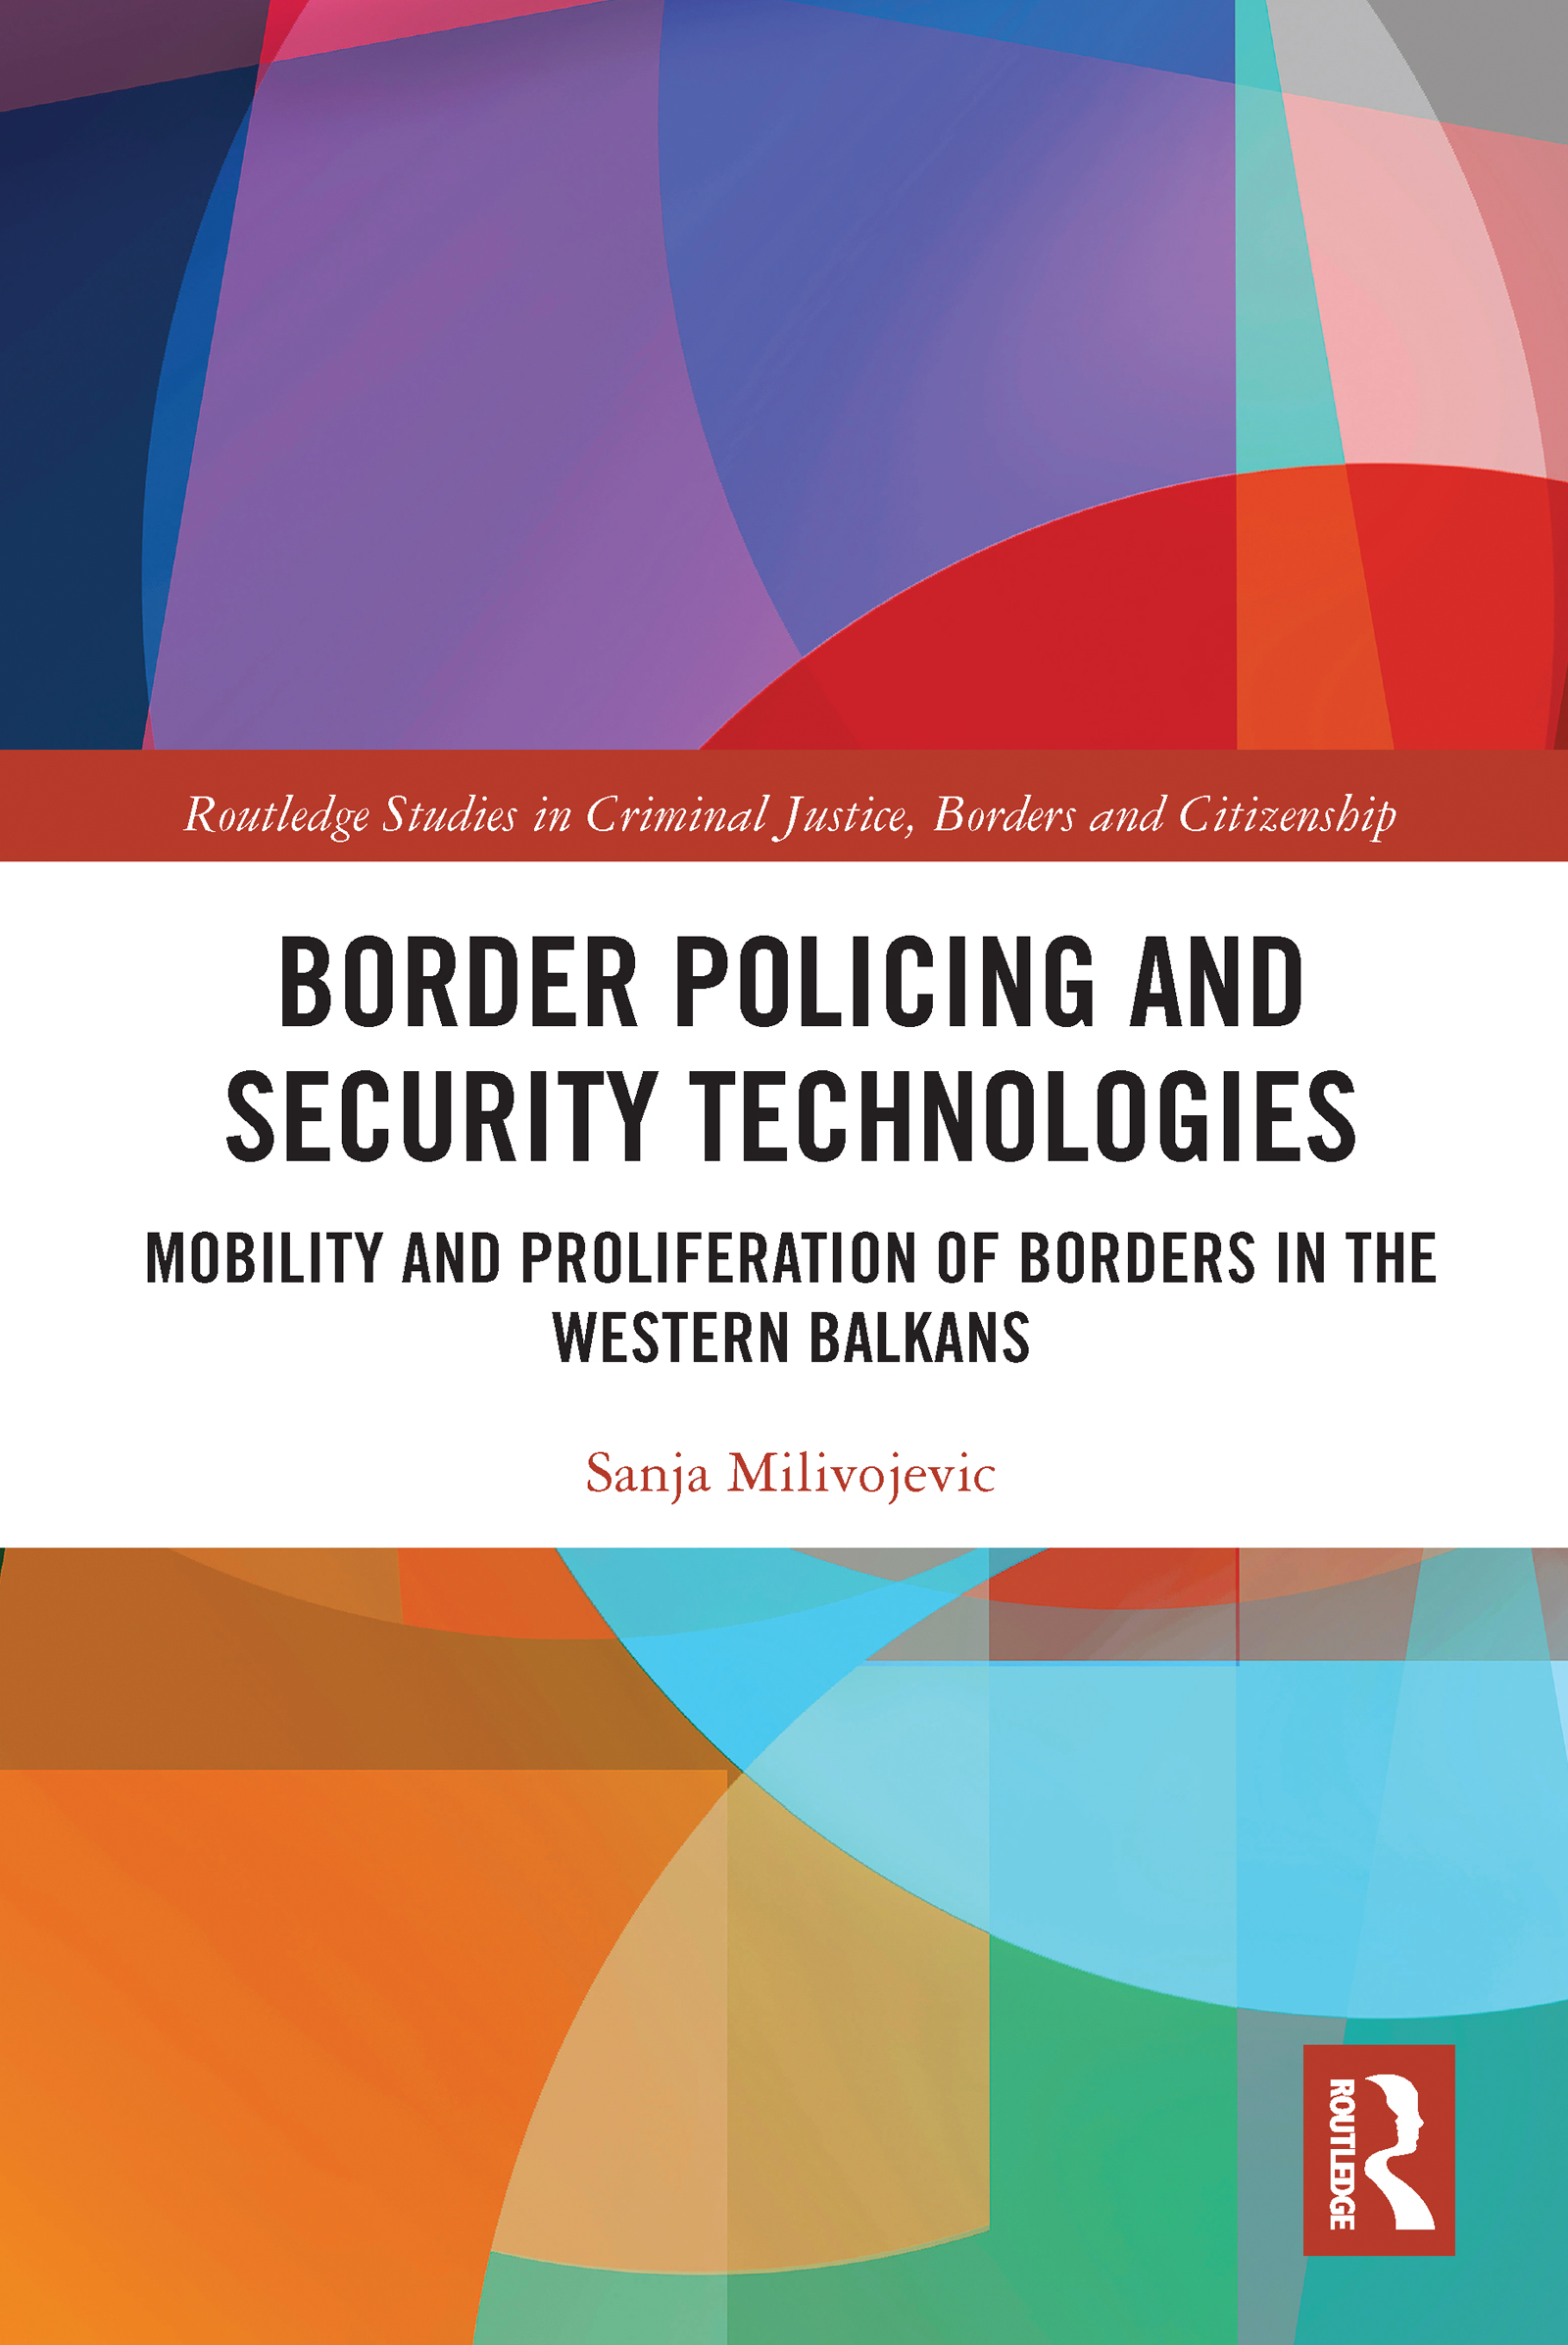 Border Policing and Security Technologies